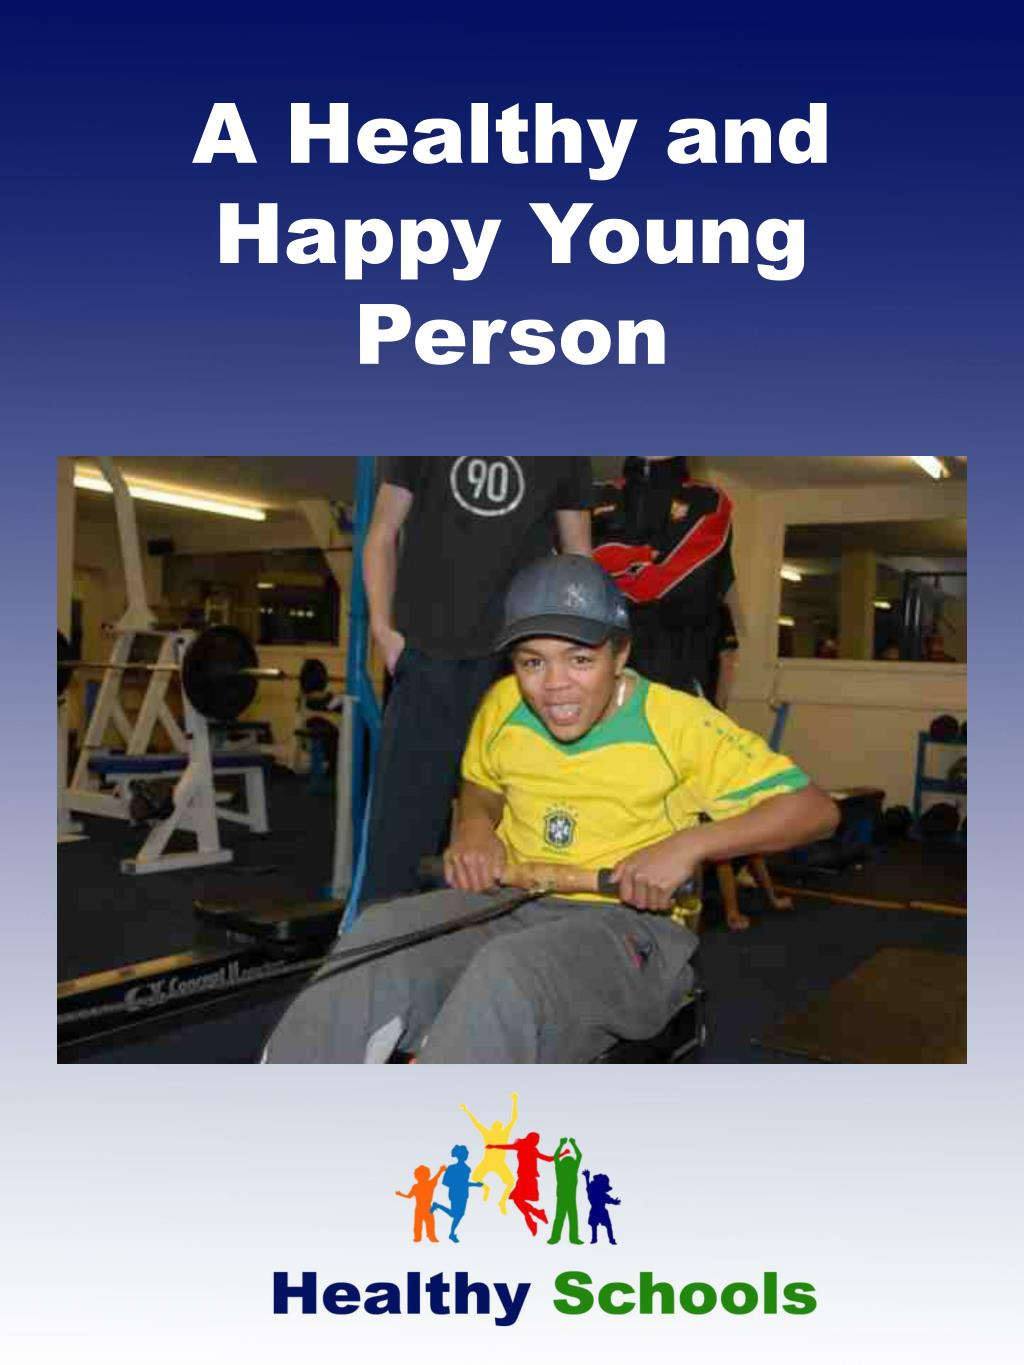 A Healthy and Happy Young Person